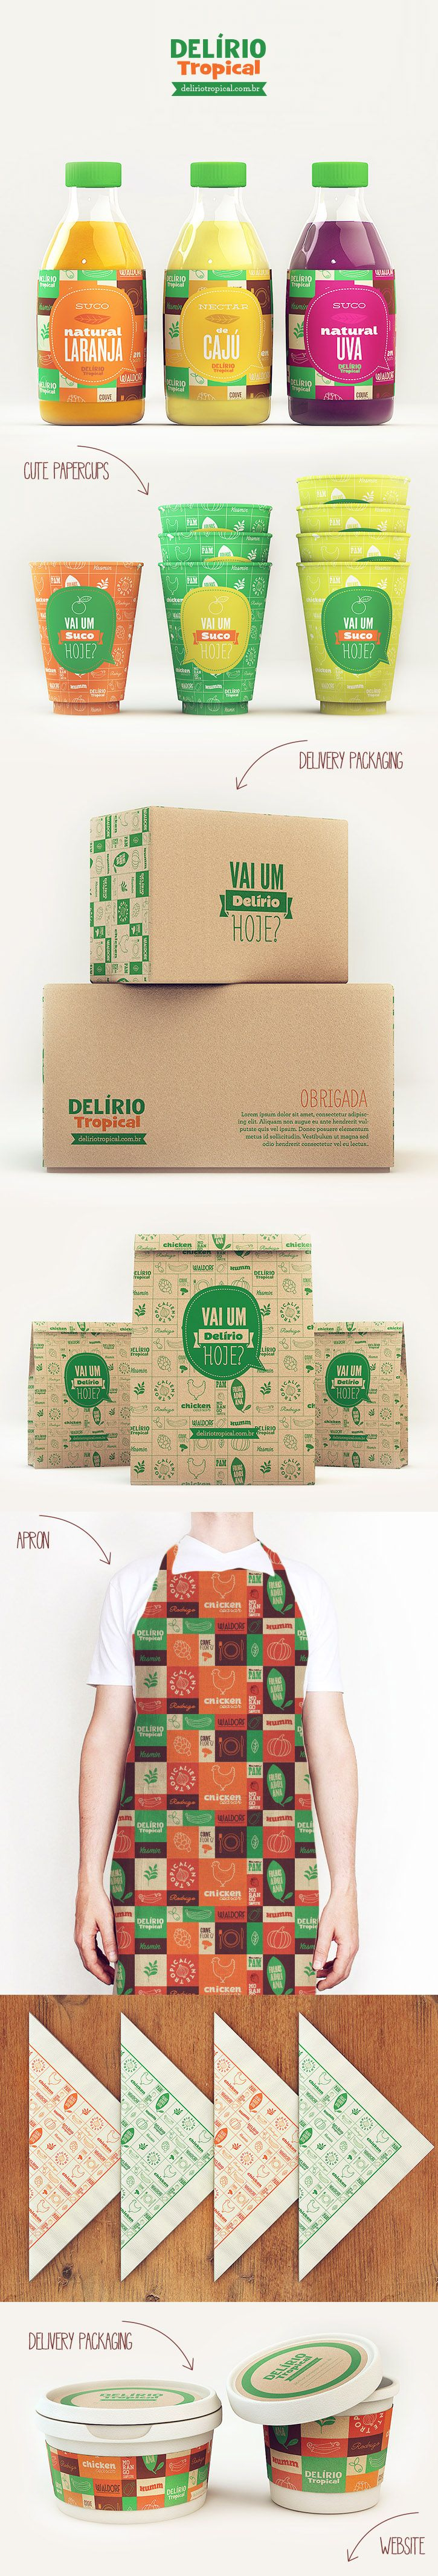 Delírio Tropical by Isabela Rodrigues #identity #packaging #branding PD